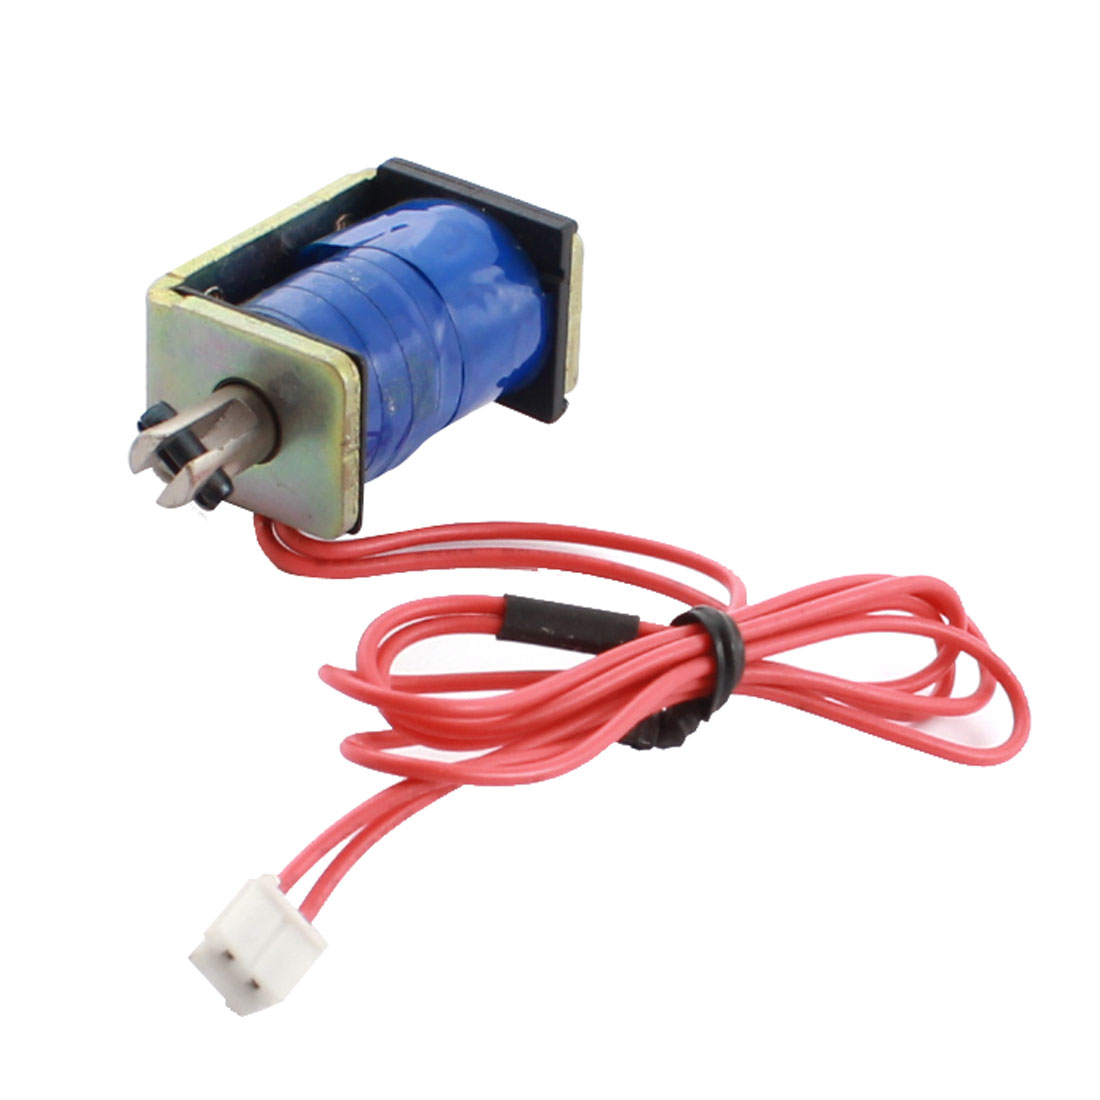 Replacement DC 12V 13.8W 500g Force 5mm Stroke Pull Solenoid Electromagnet